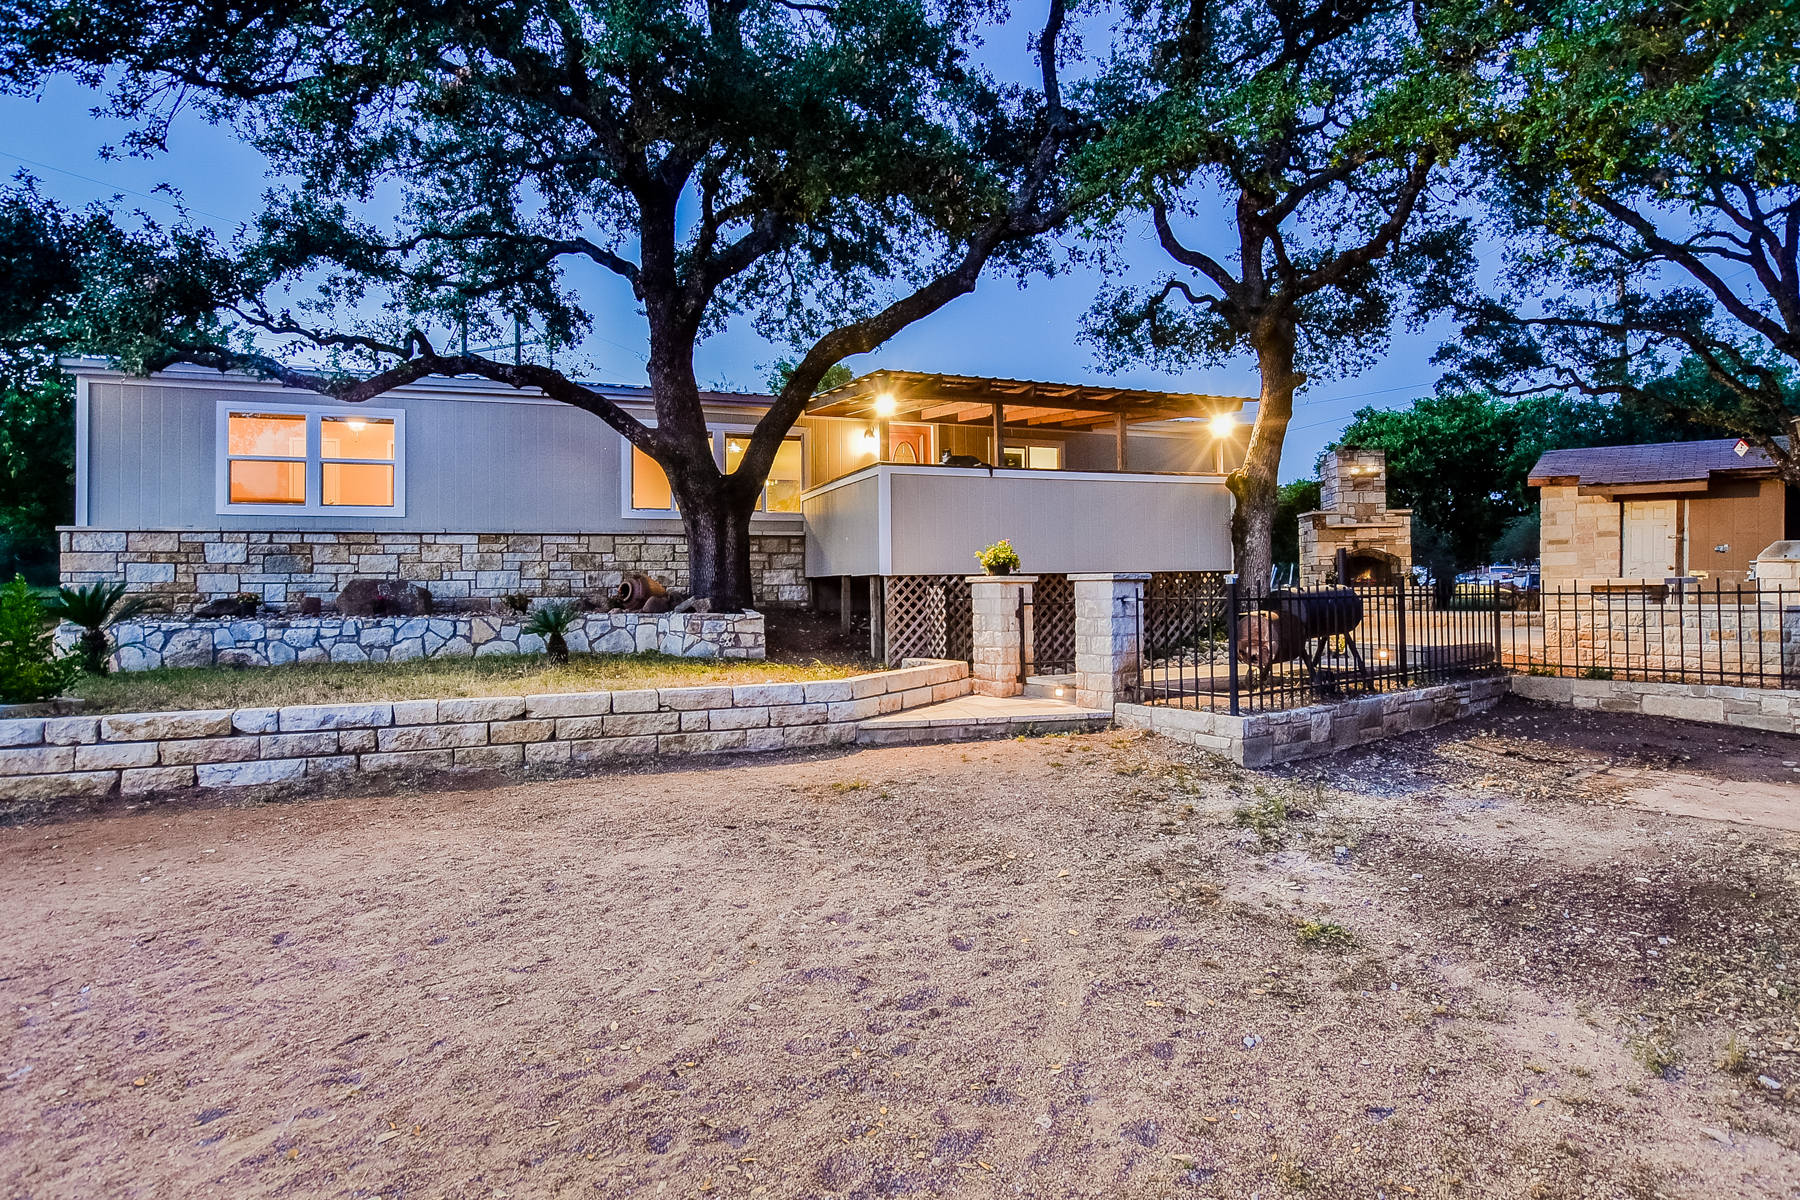 Single Family Home for Sale at Private And Beautiful Home in Cottonwood Shores 809 Westwood Dr Cottonwood, Texas 78657 United States